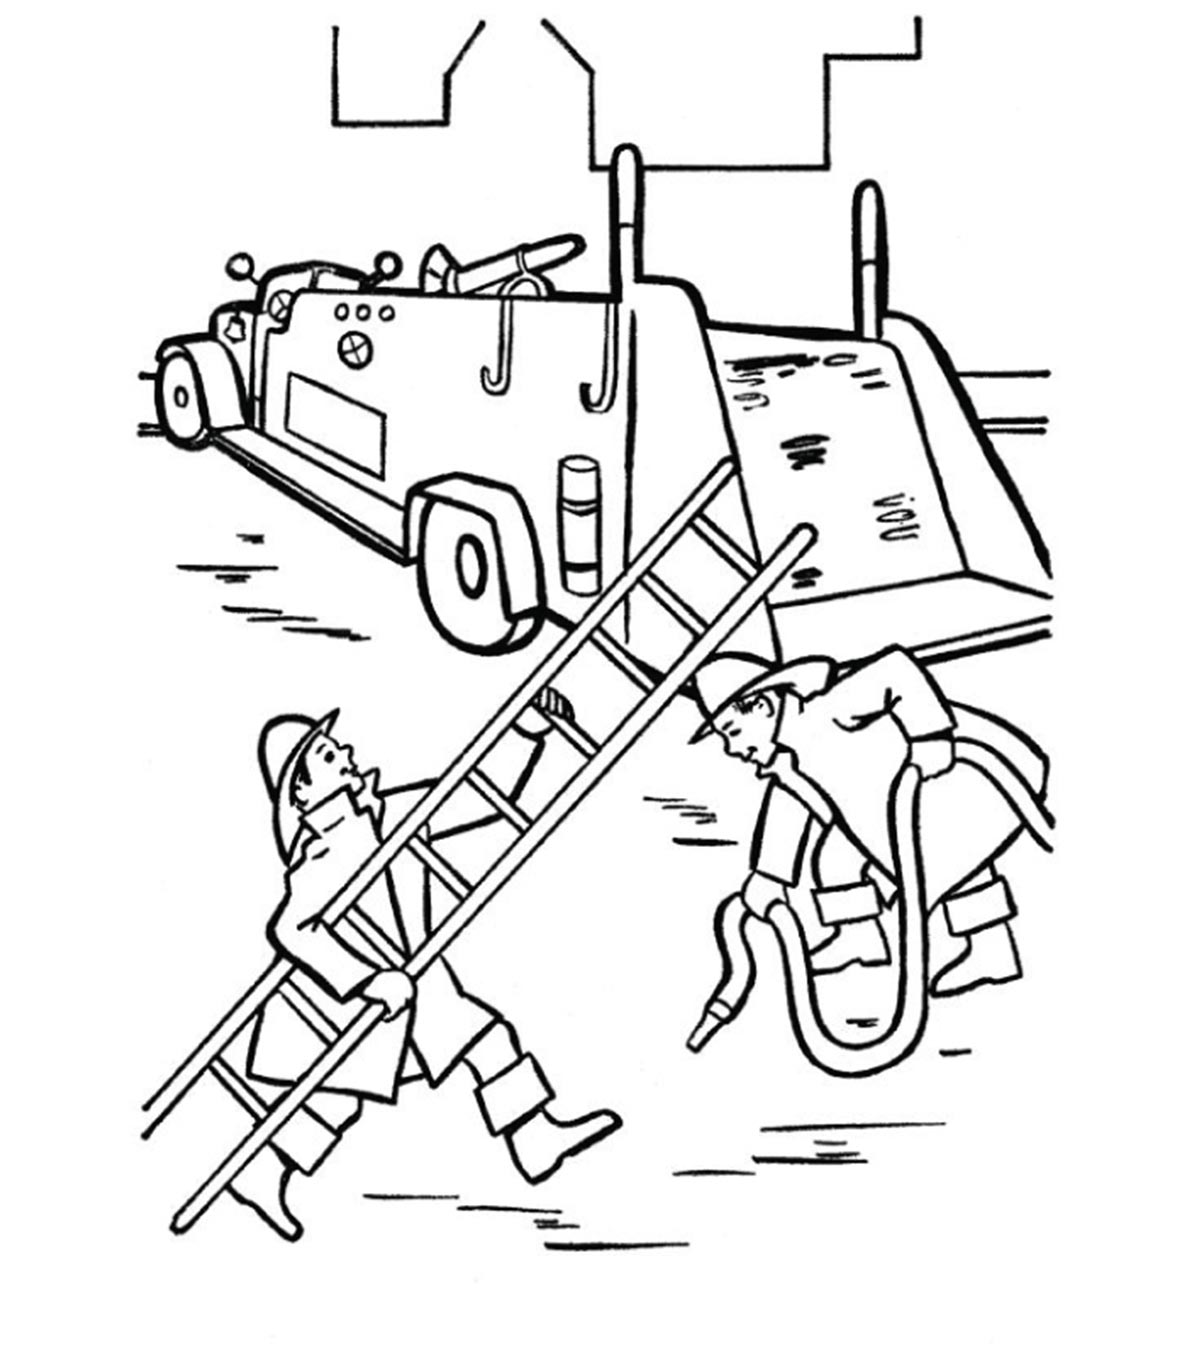 - Firefighter Coloring Pages - Free Printables - MomJunction